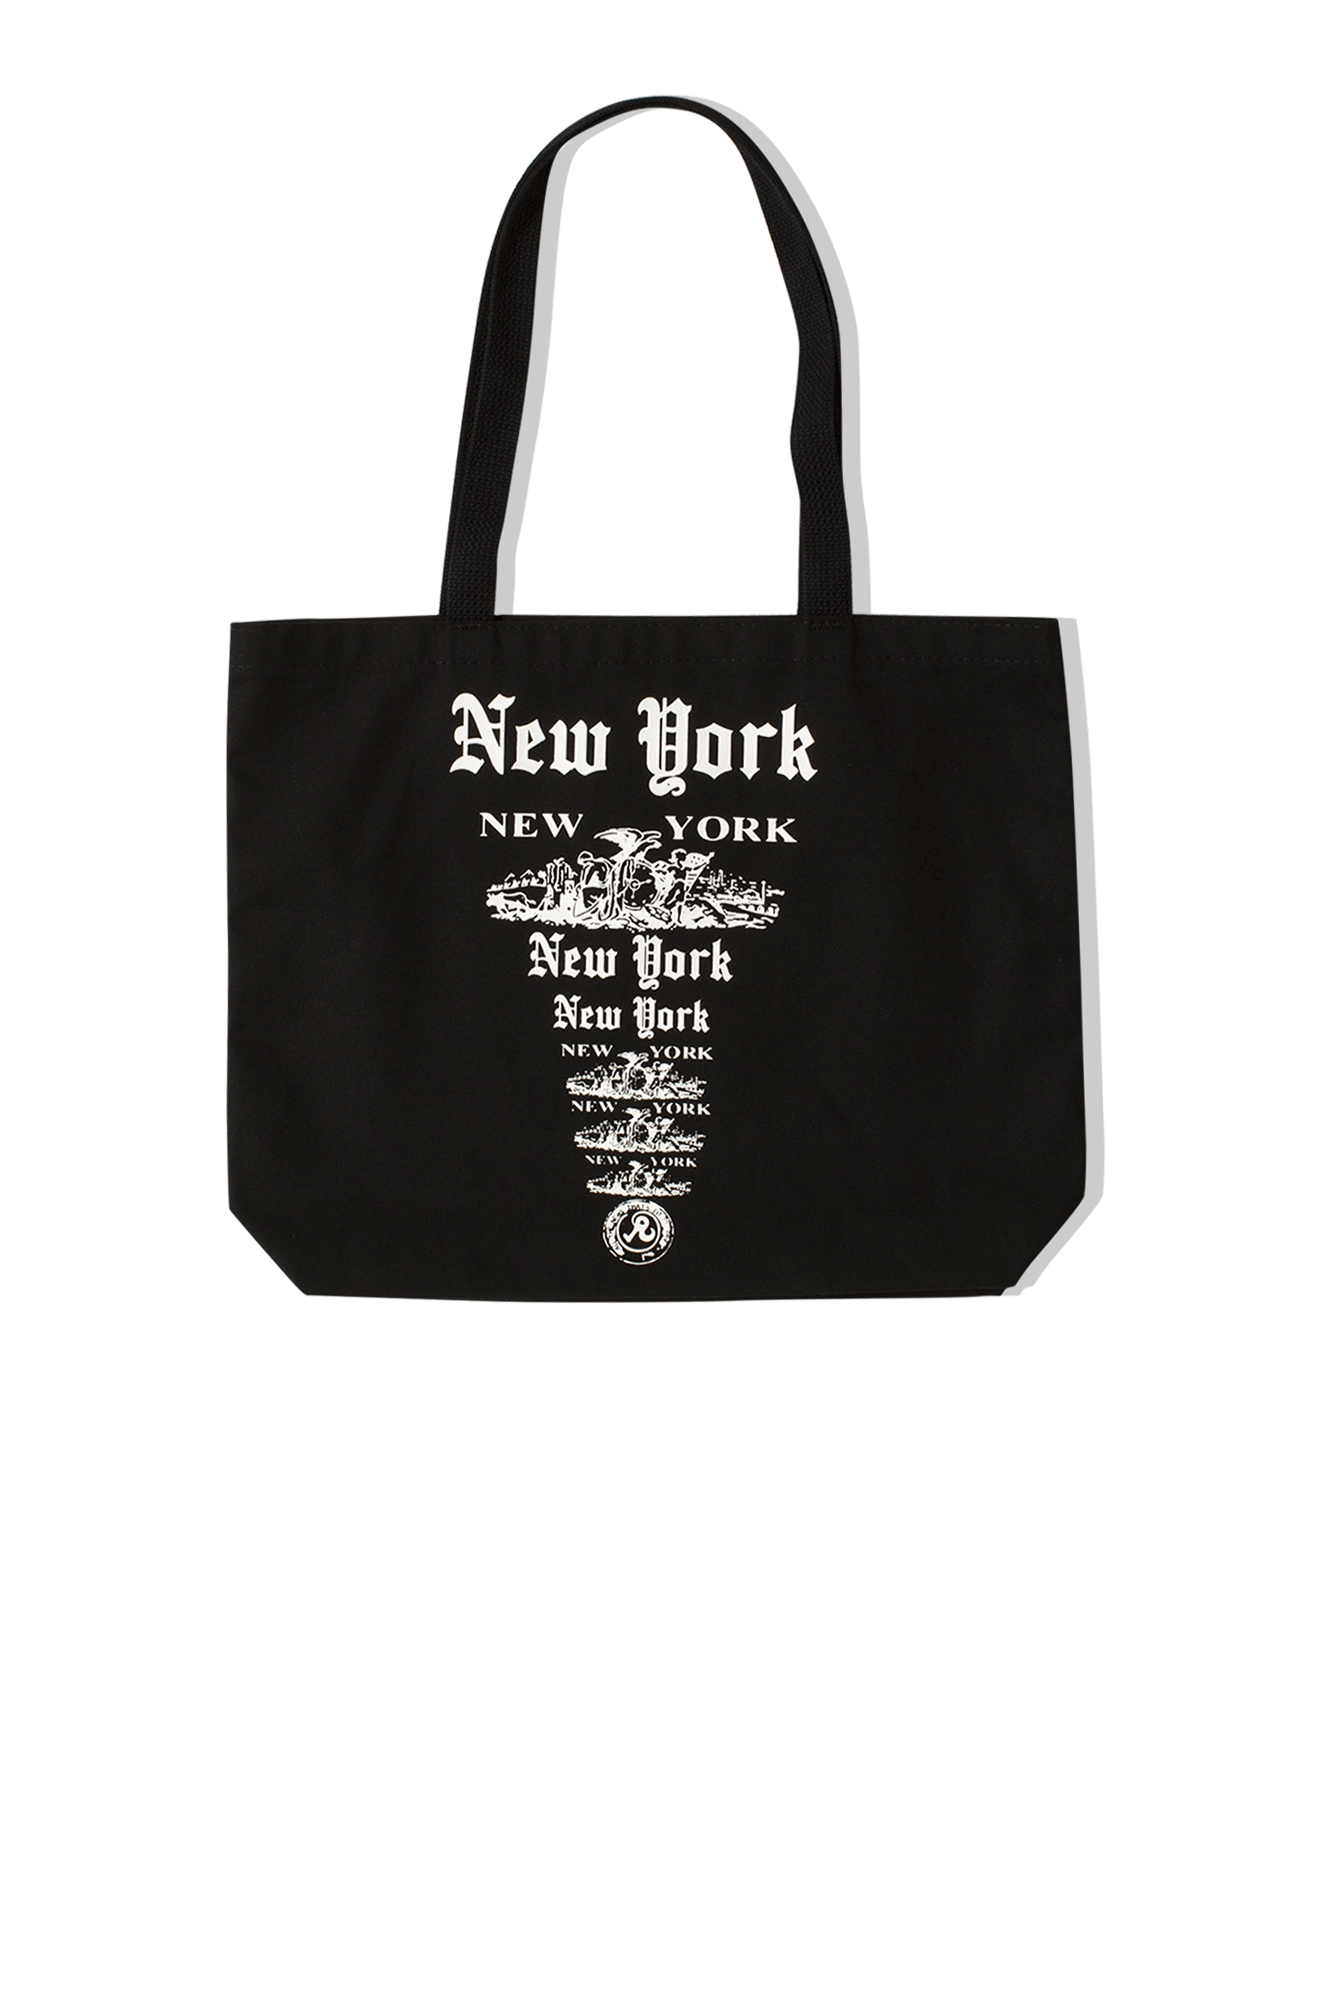 NYNY Tote Bag Black